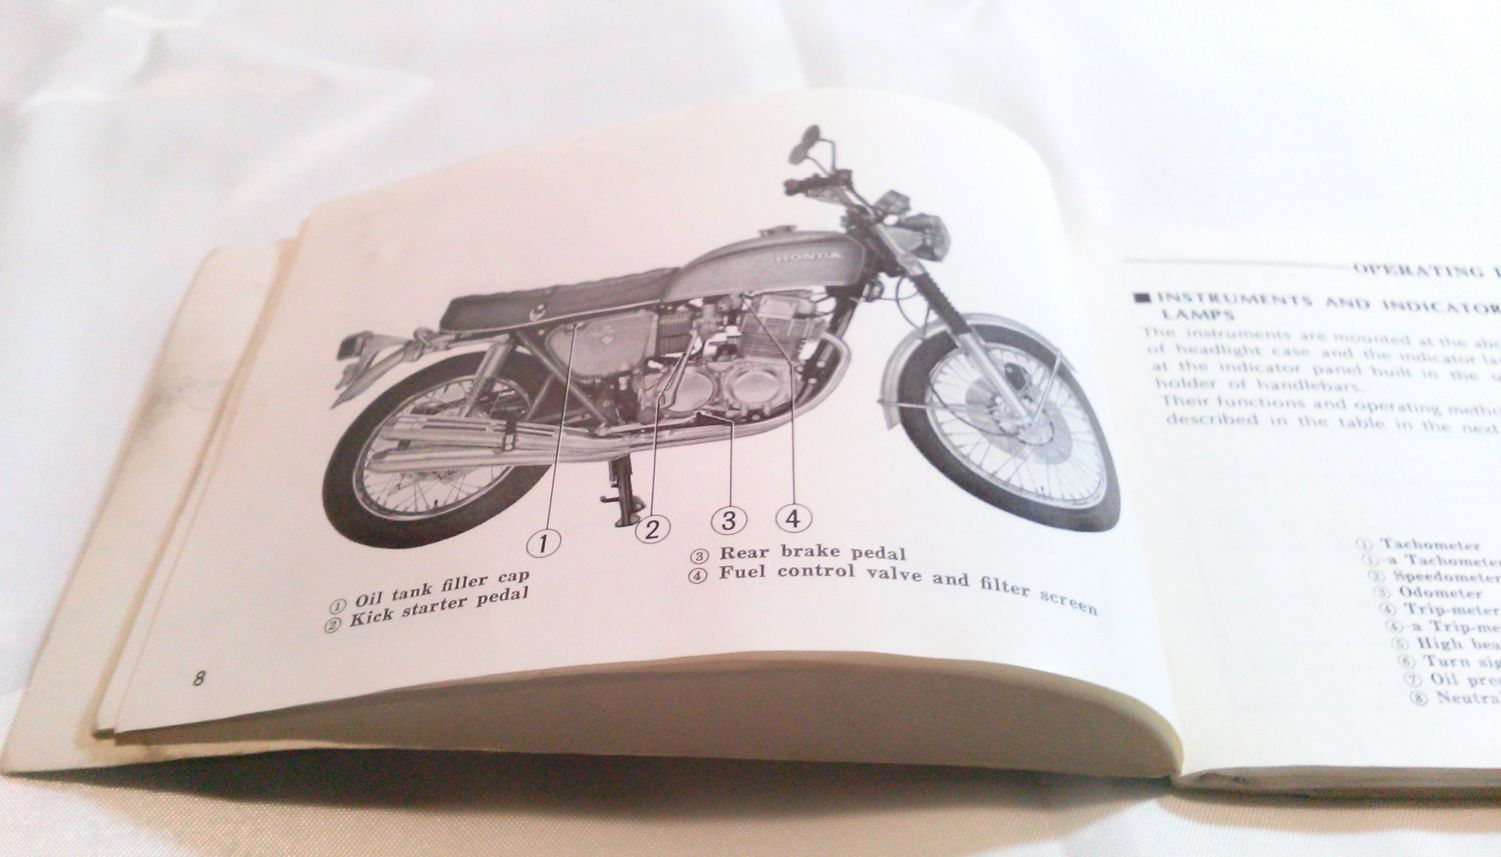 Motorcycle Honda Cb 750 Cb750 Owners Manual 3 Fold Out Wiring Schematic Diagrams Charts